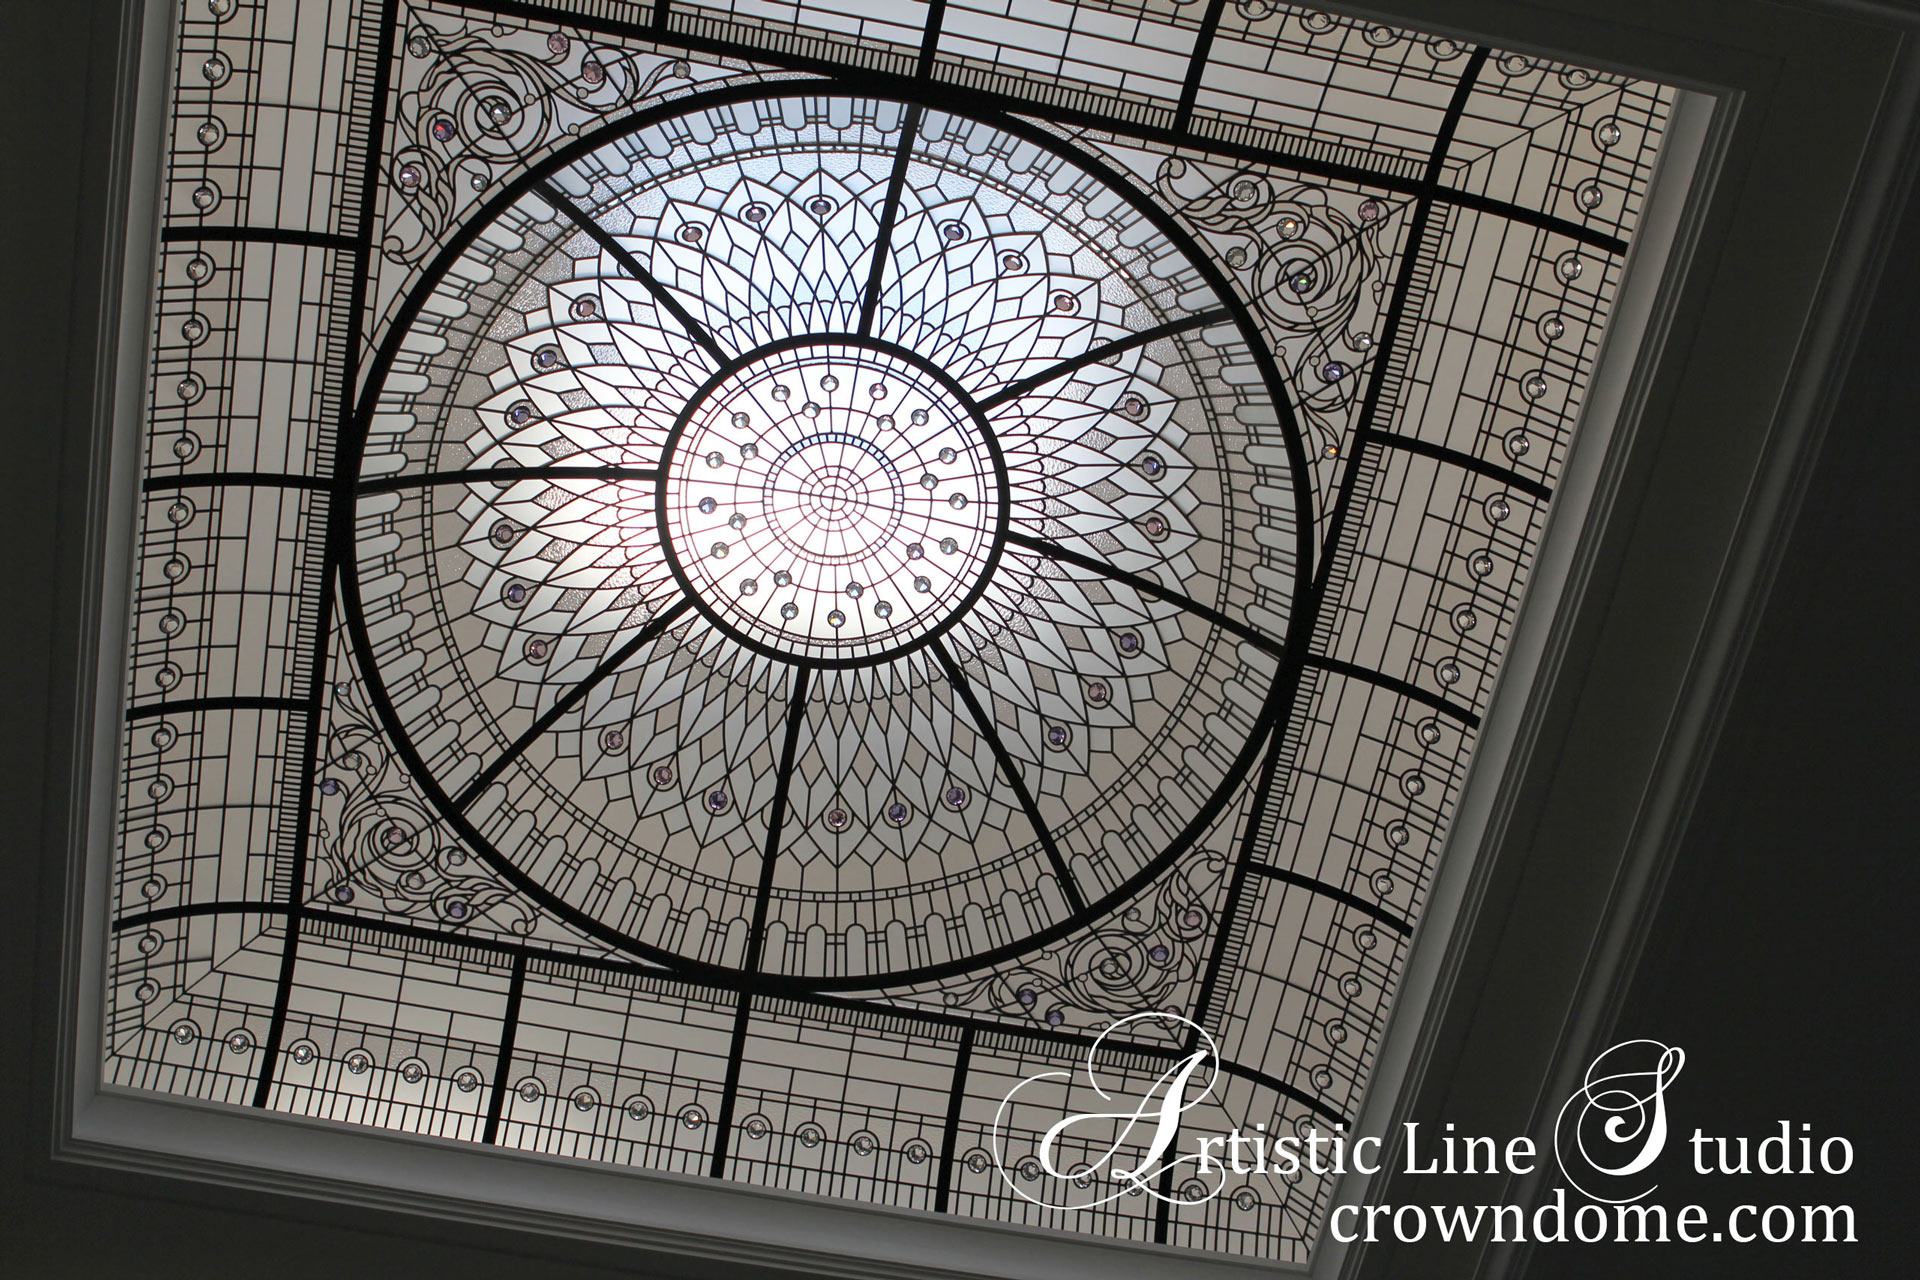 Large stained leaded glass dome skylight ceiling for an interior design of a custom built house decorative glass ceiling inspired by historical glass skylights